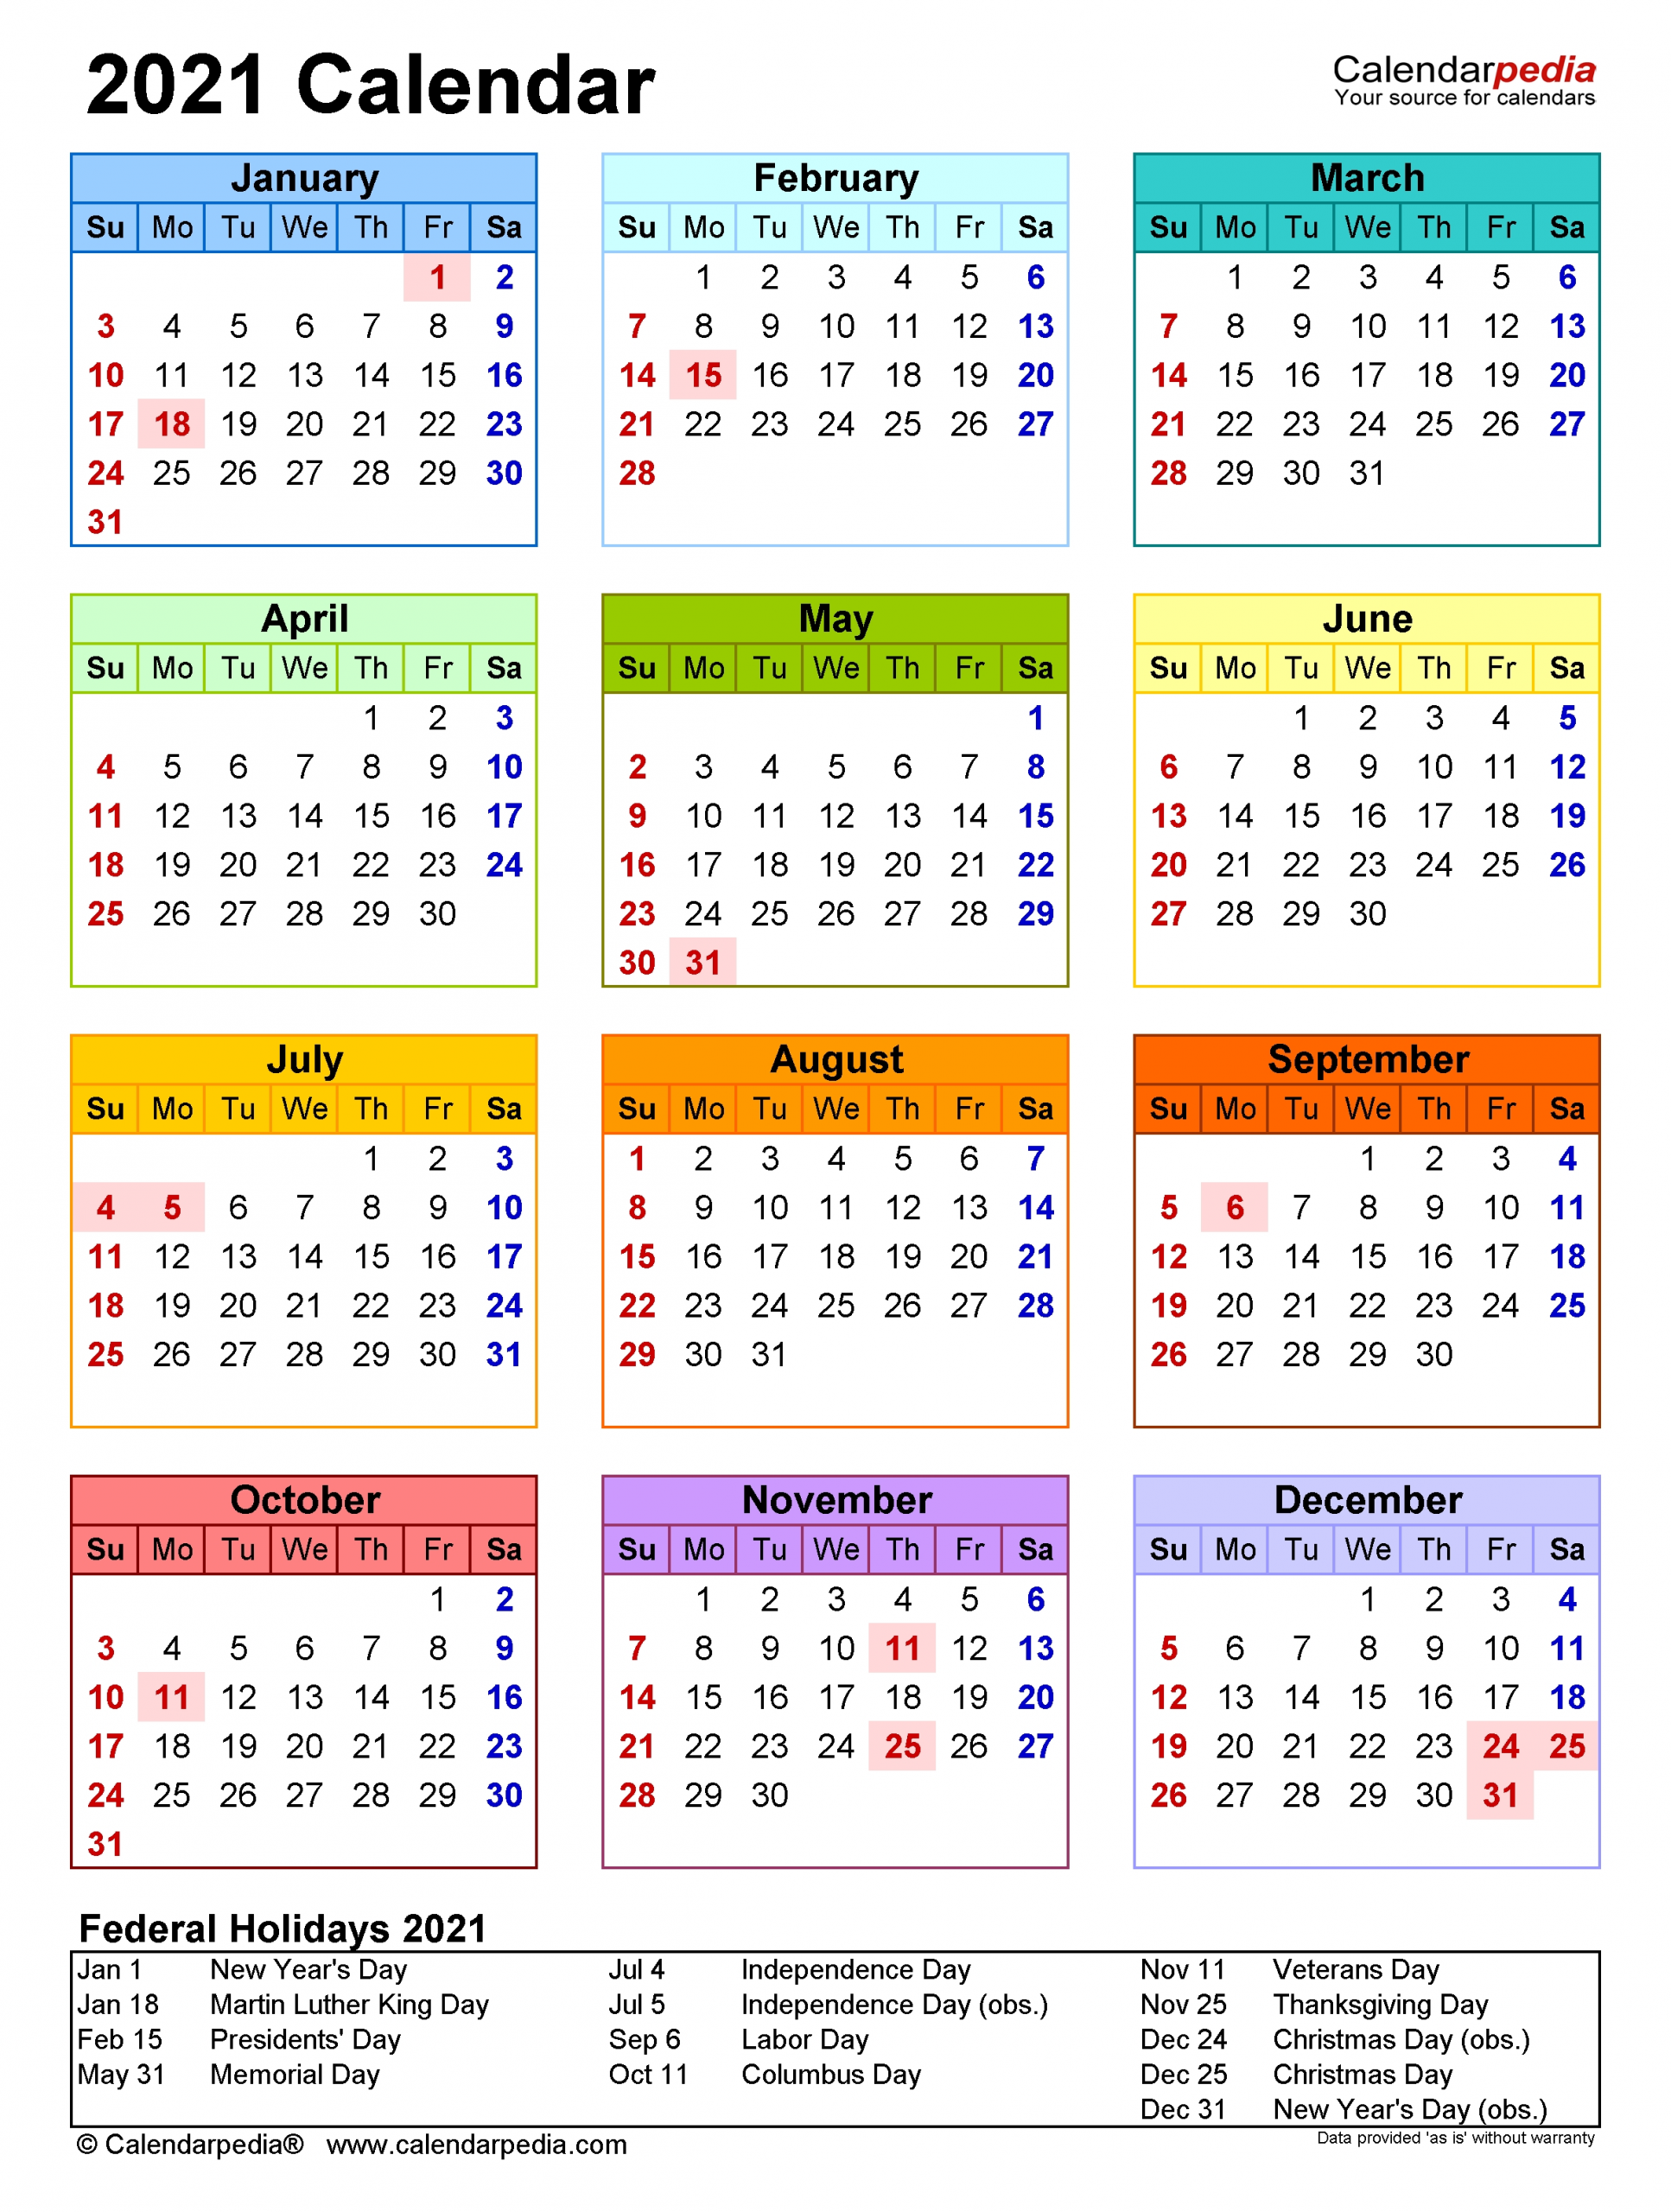 2021 Calendar - Free Printable Word Templates - Calendarpedia